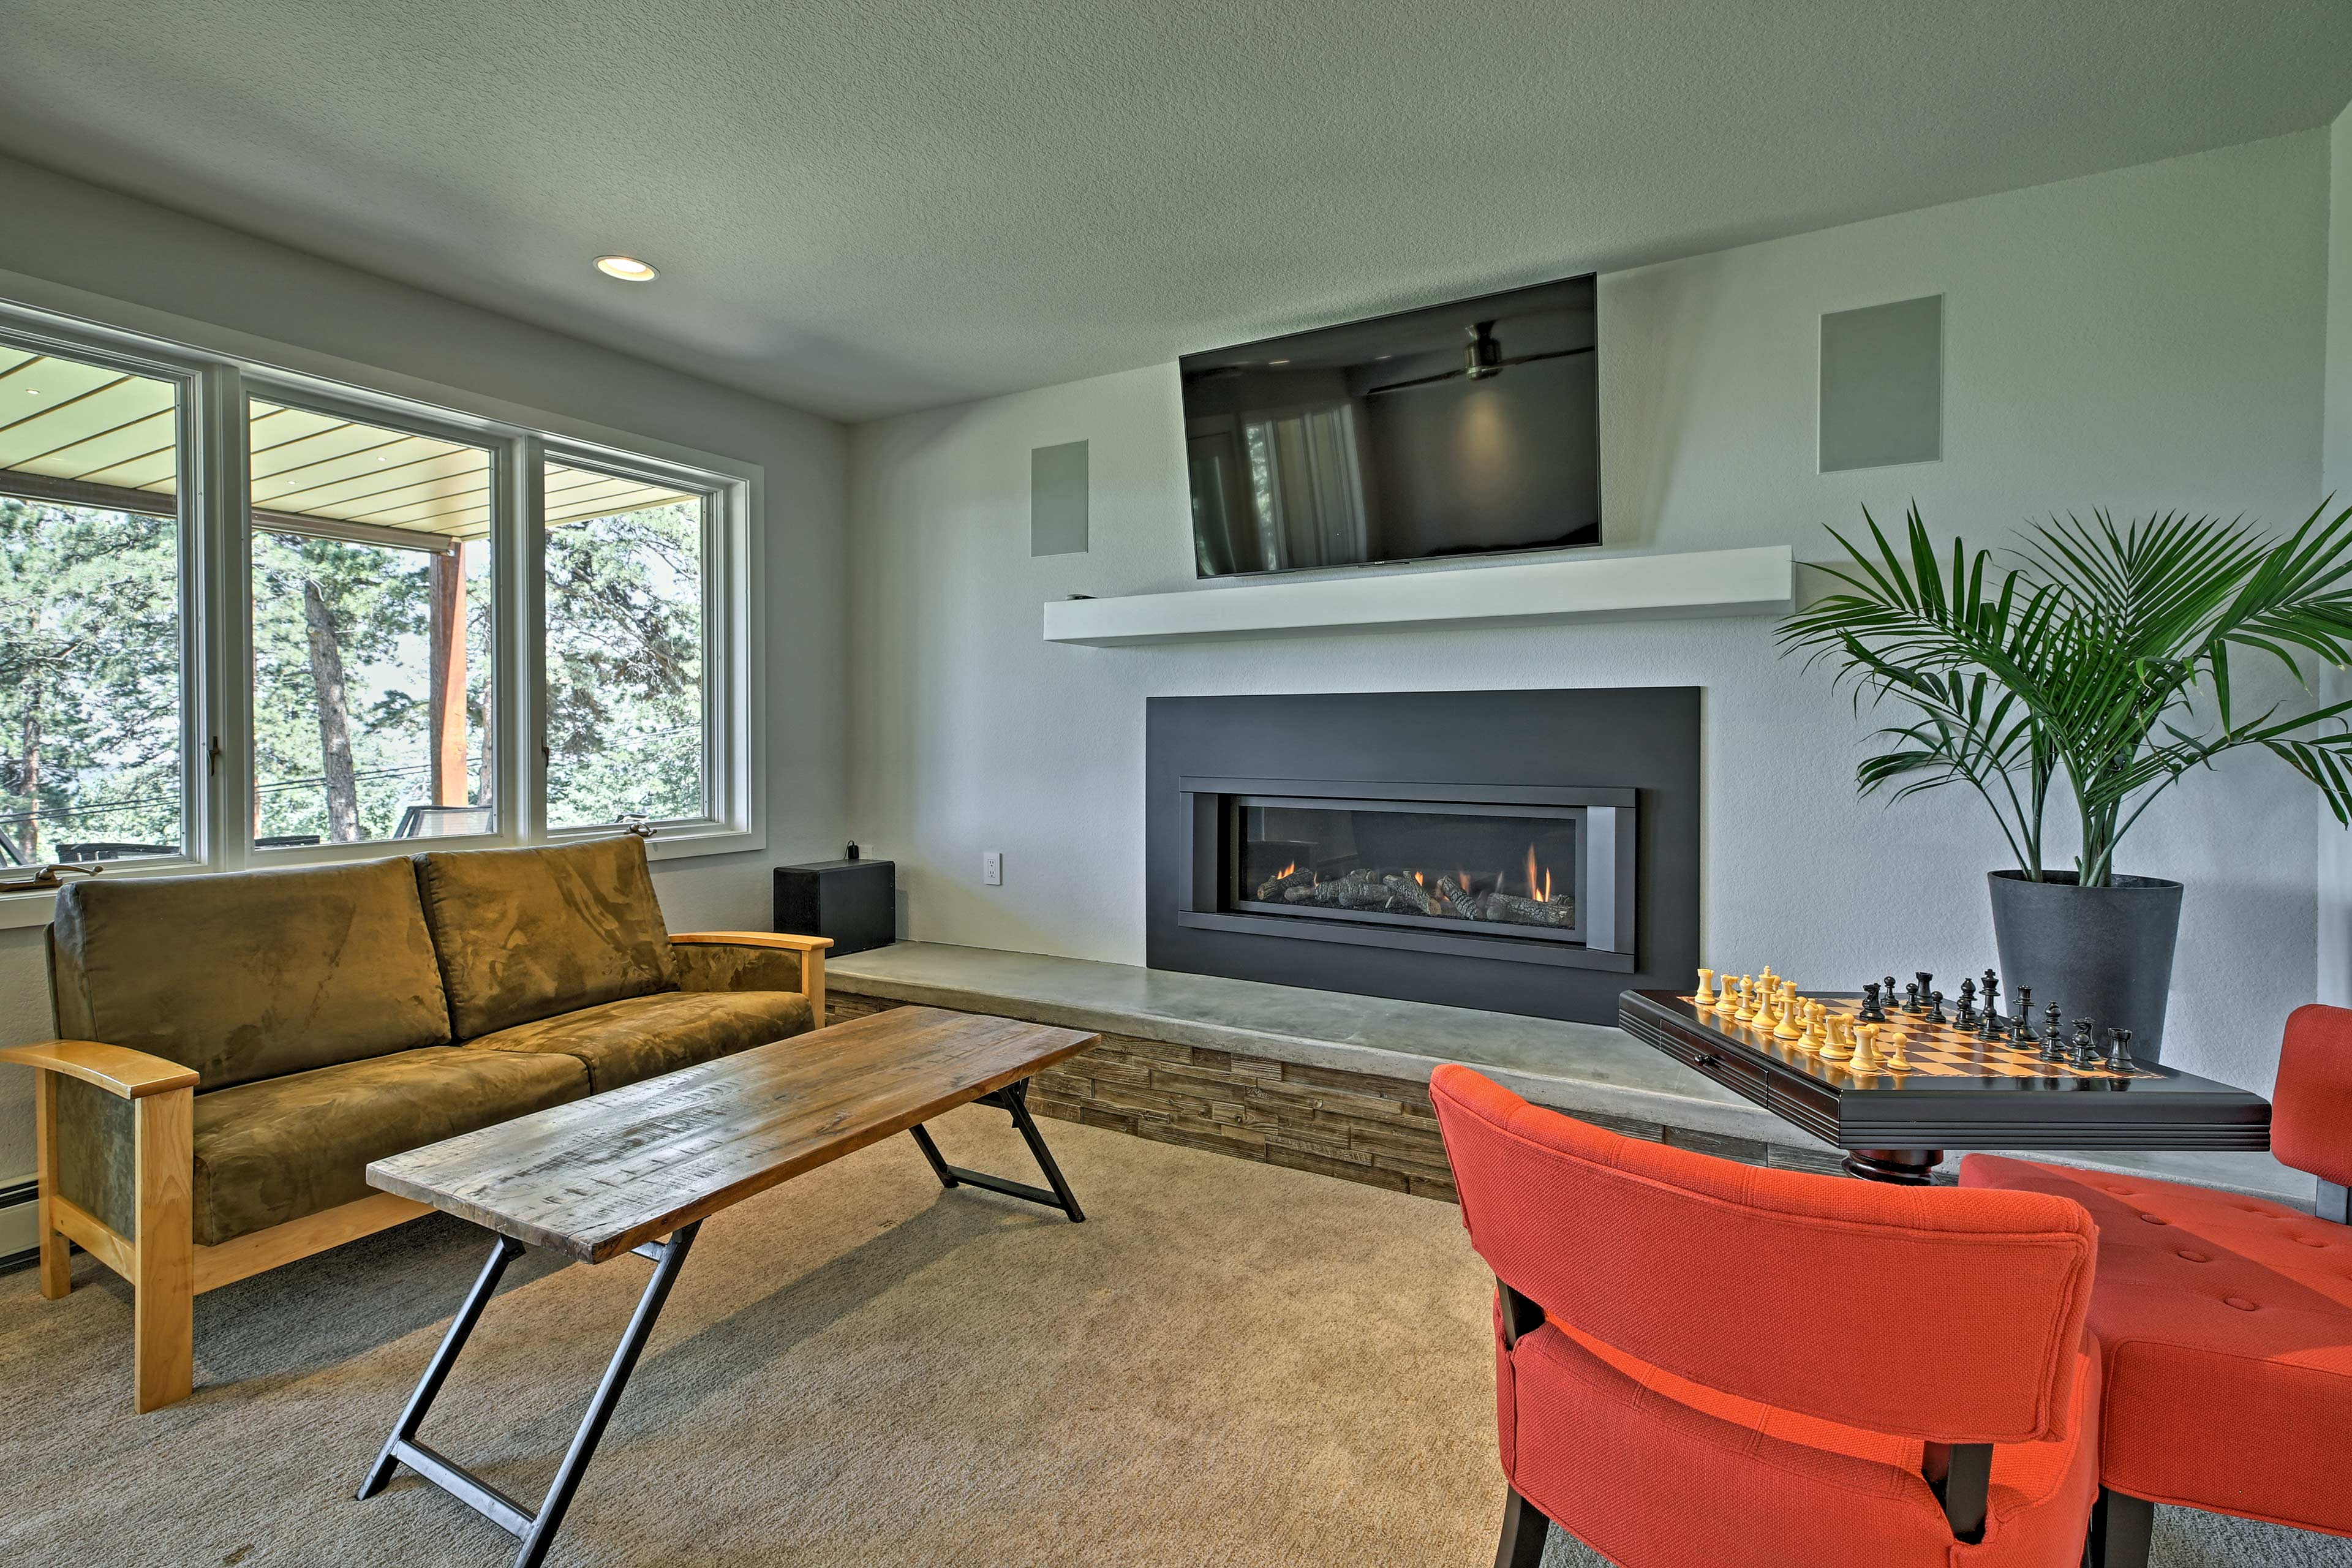 Relax with your crew of 8 and enjoy the brand new mid-century modern interior.